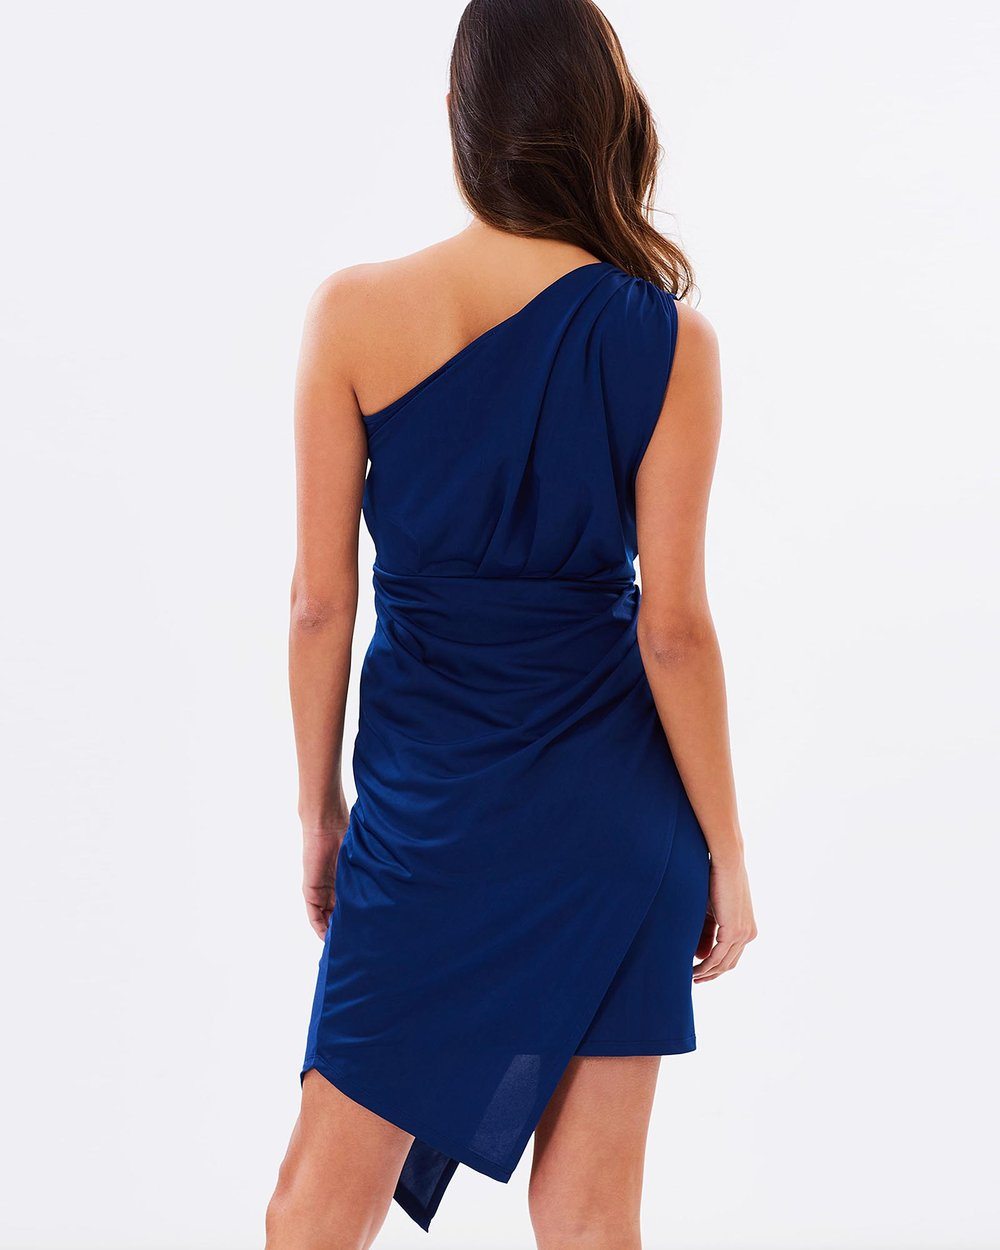 a036b7f2d One-Shoulder Asymmetrical Dress by SKIVA Online   THE ICONIC   Australia